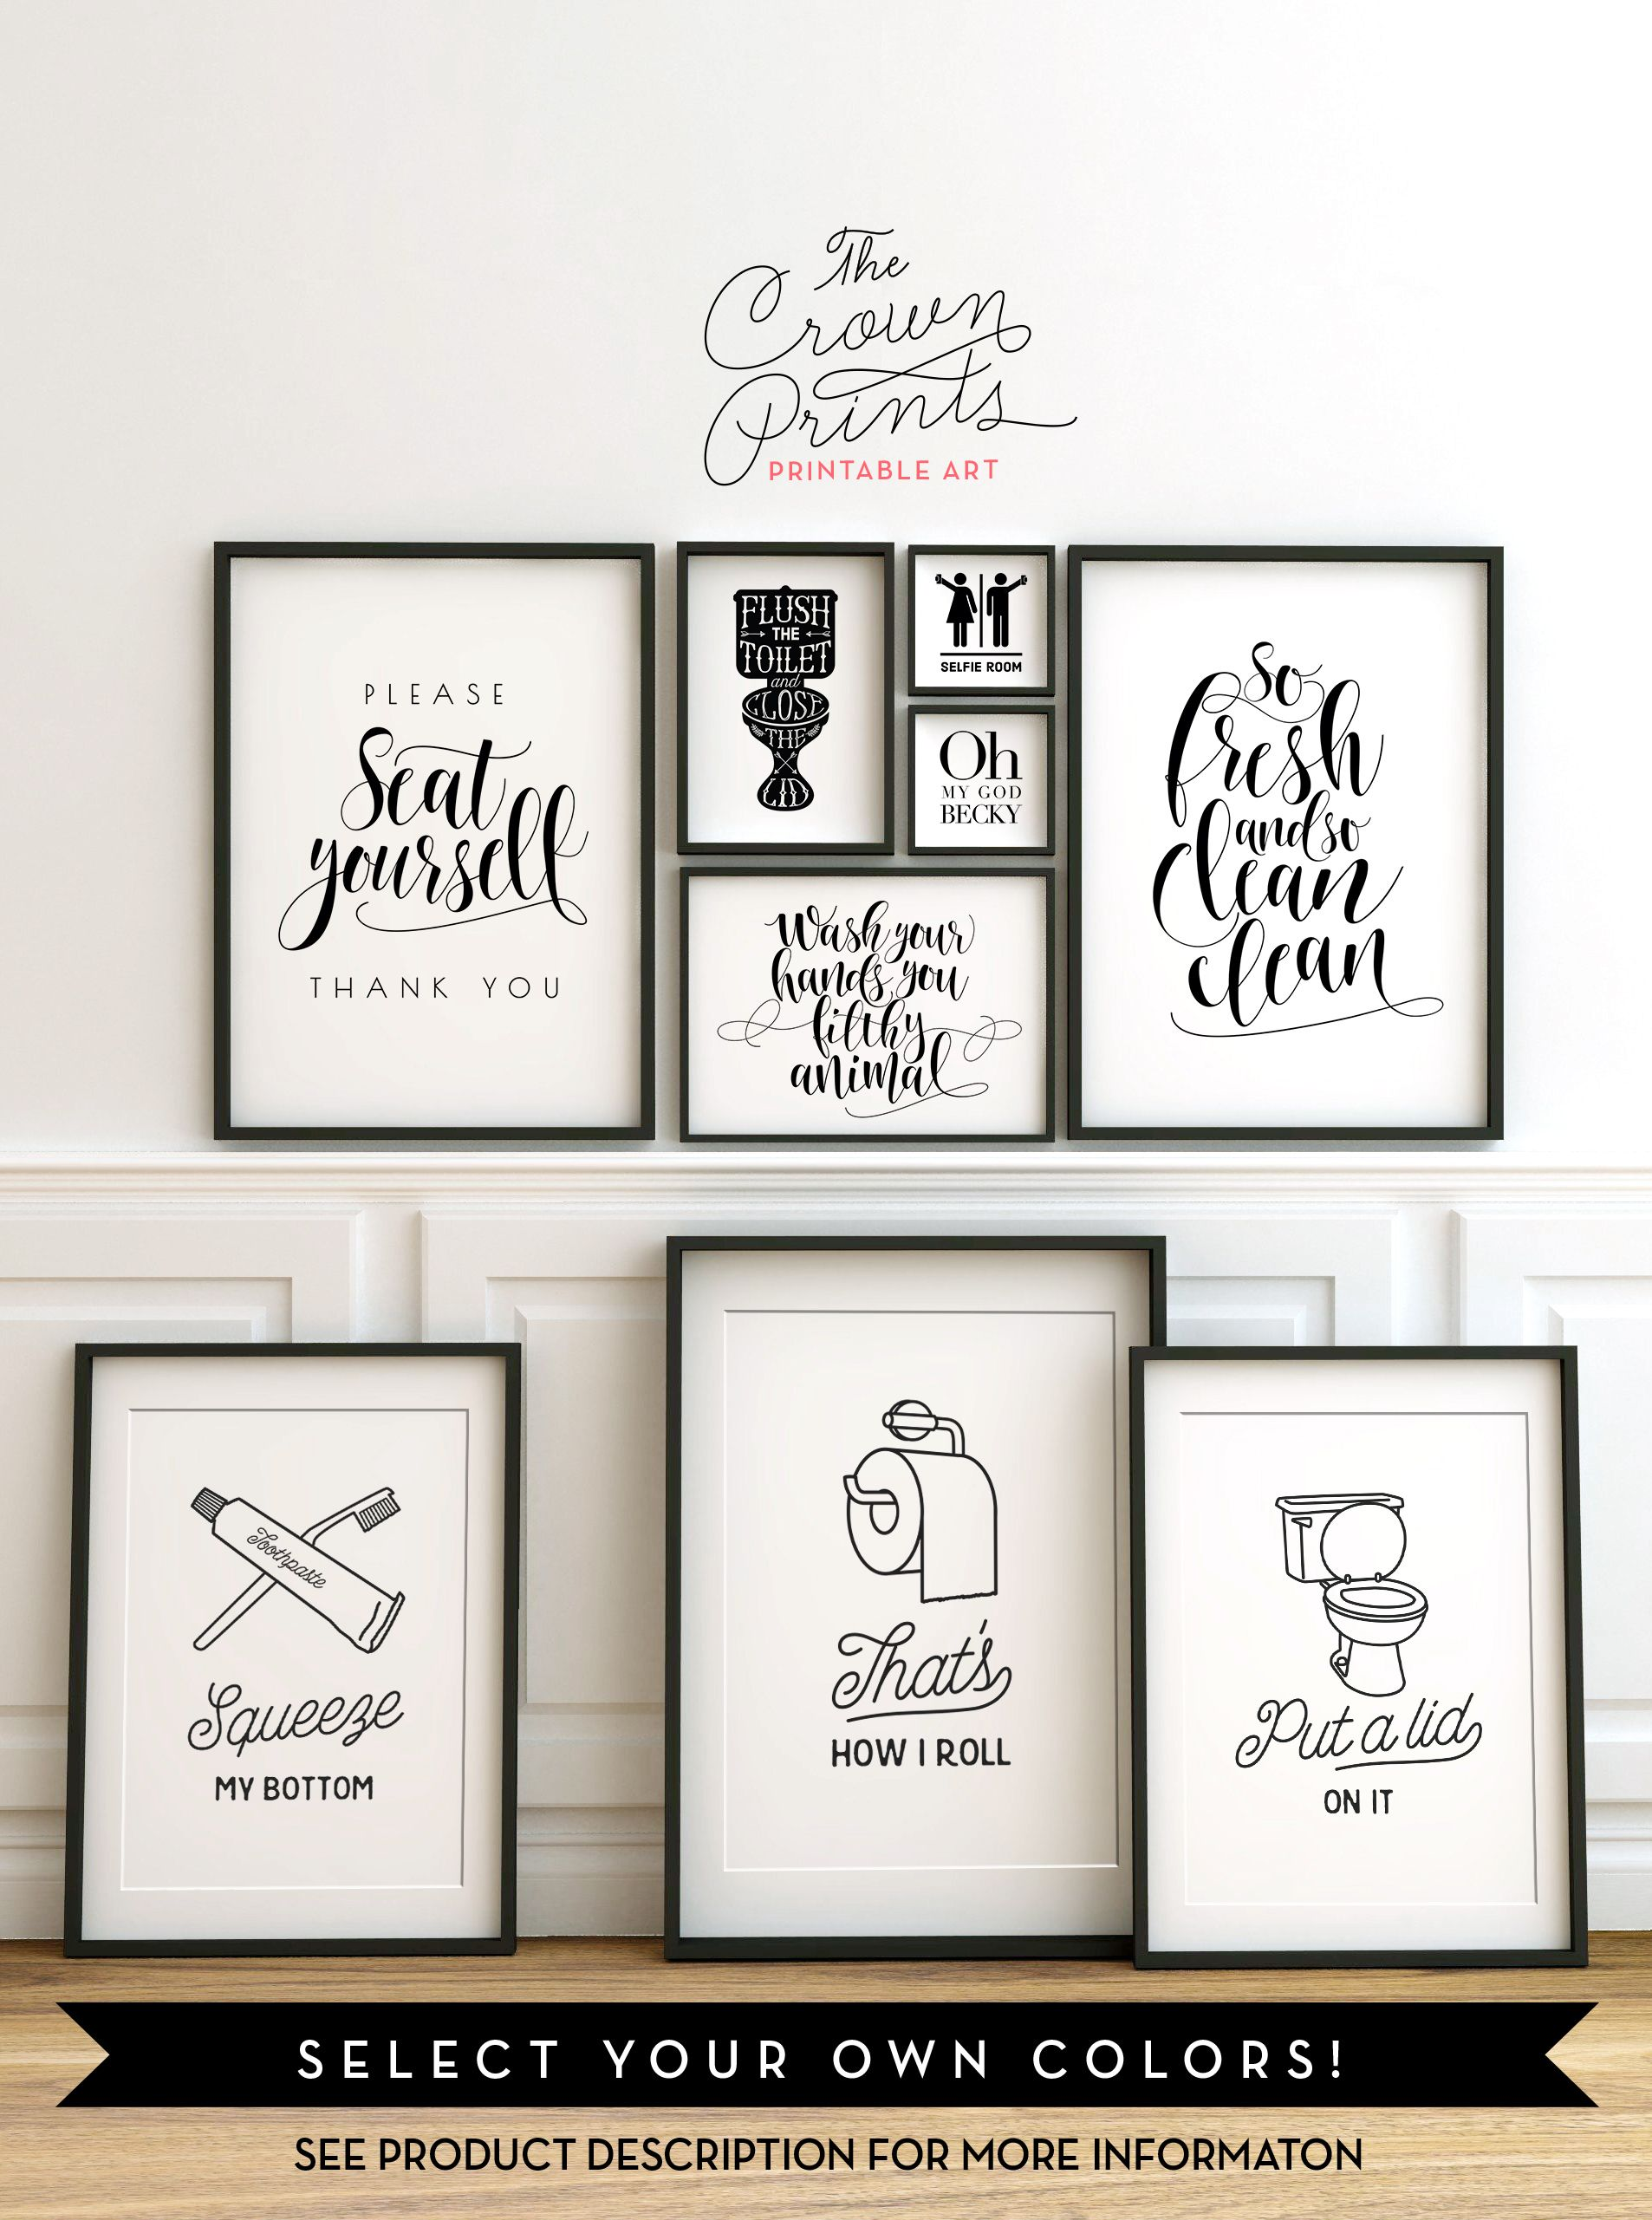 Printable Bathroom Wall Art From The Crown Prints On Etsy Lots